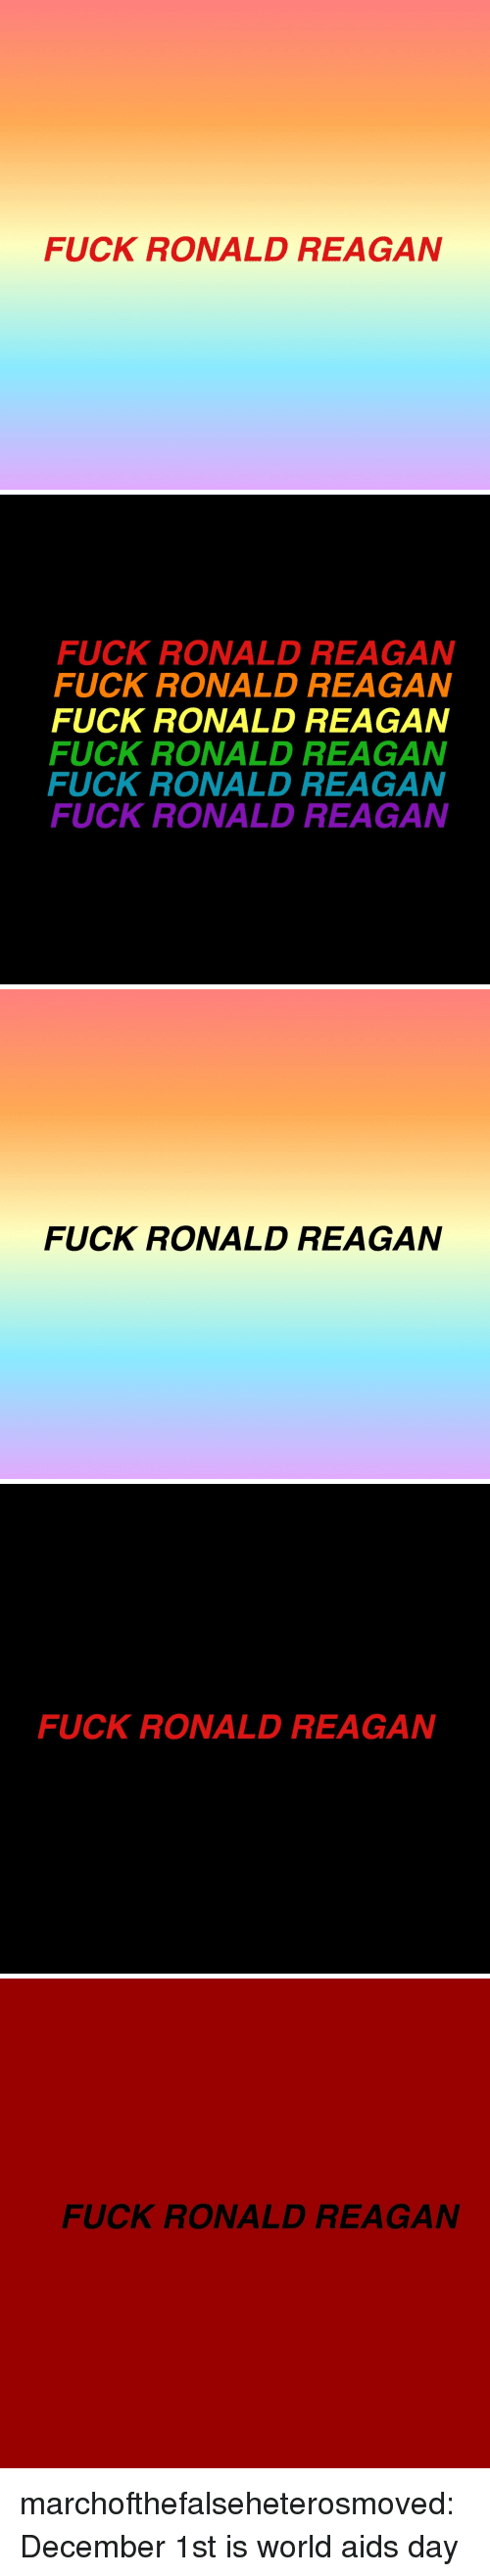 December 1St: FUCK RONALD REAGAN   FUCK RONALD REAGAN  FUCK RONALD REAGAN  FUCK RONALD REAGAN  FUCK RONALD REAGAN  FUCK RONALD REAGAN  FUCK RONALD REAGAN   FUCK RONALD REAGAN   FUCK RONALD REAGAN   FUCK RONALD REAGAN marchofthefalseheterosmoved:December 1st is world aids day